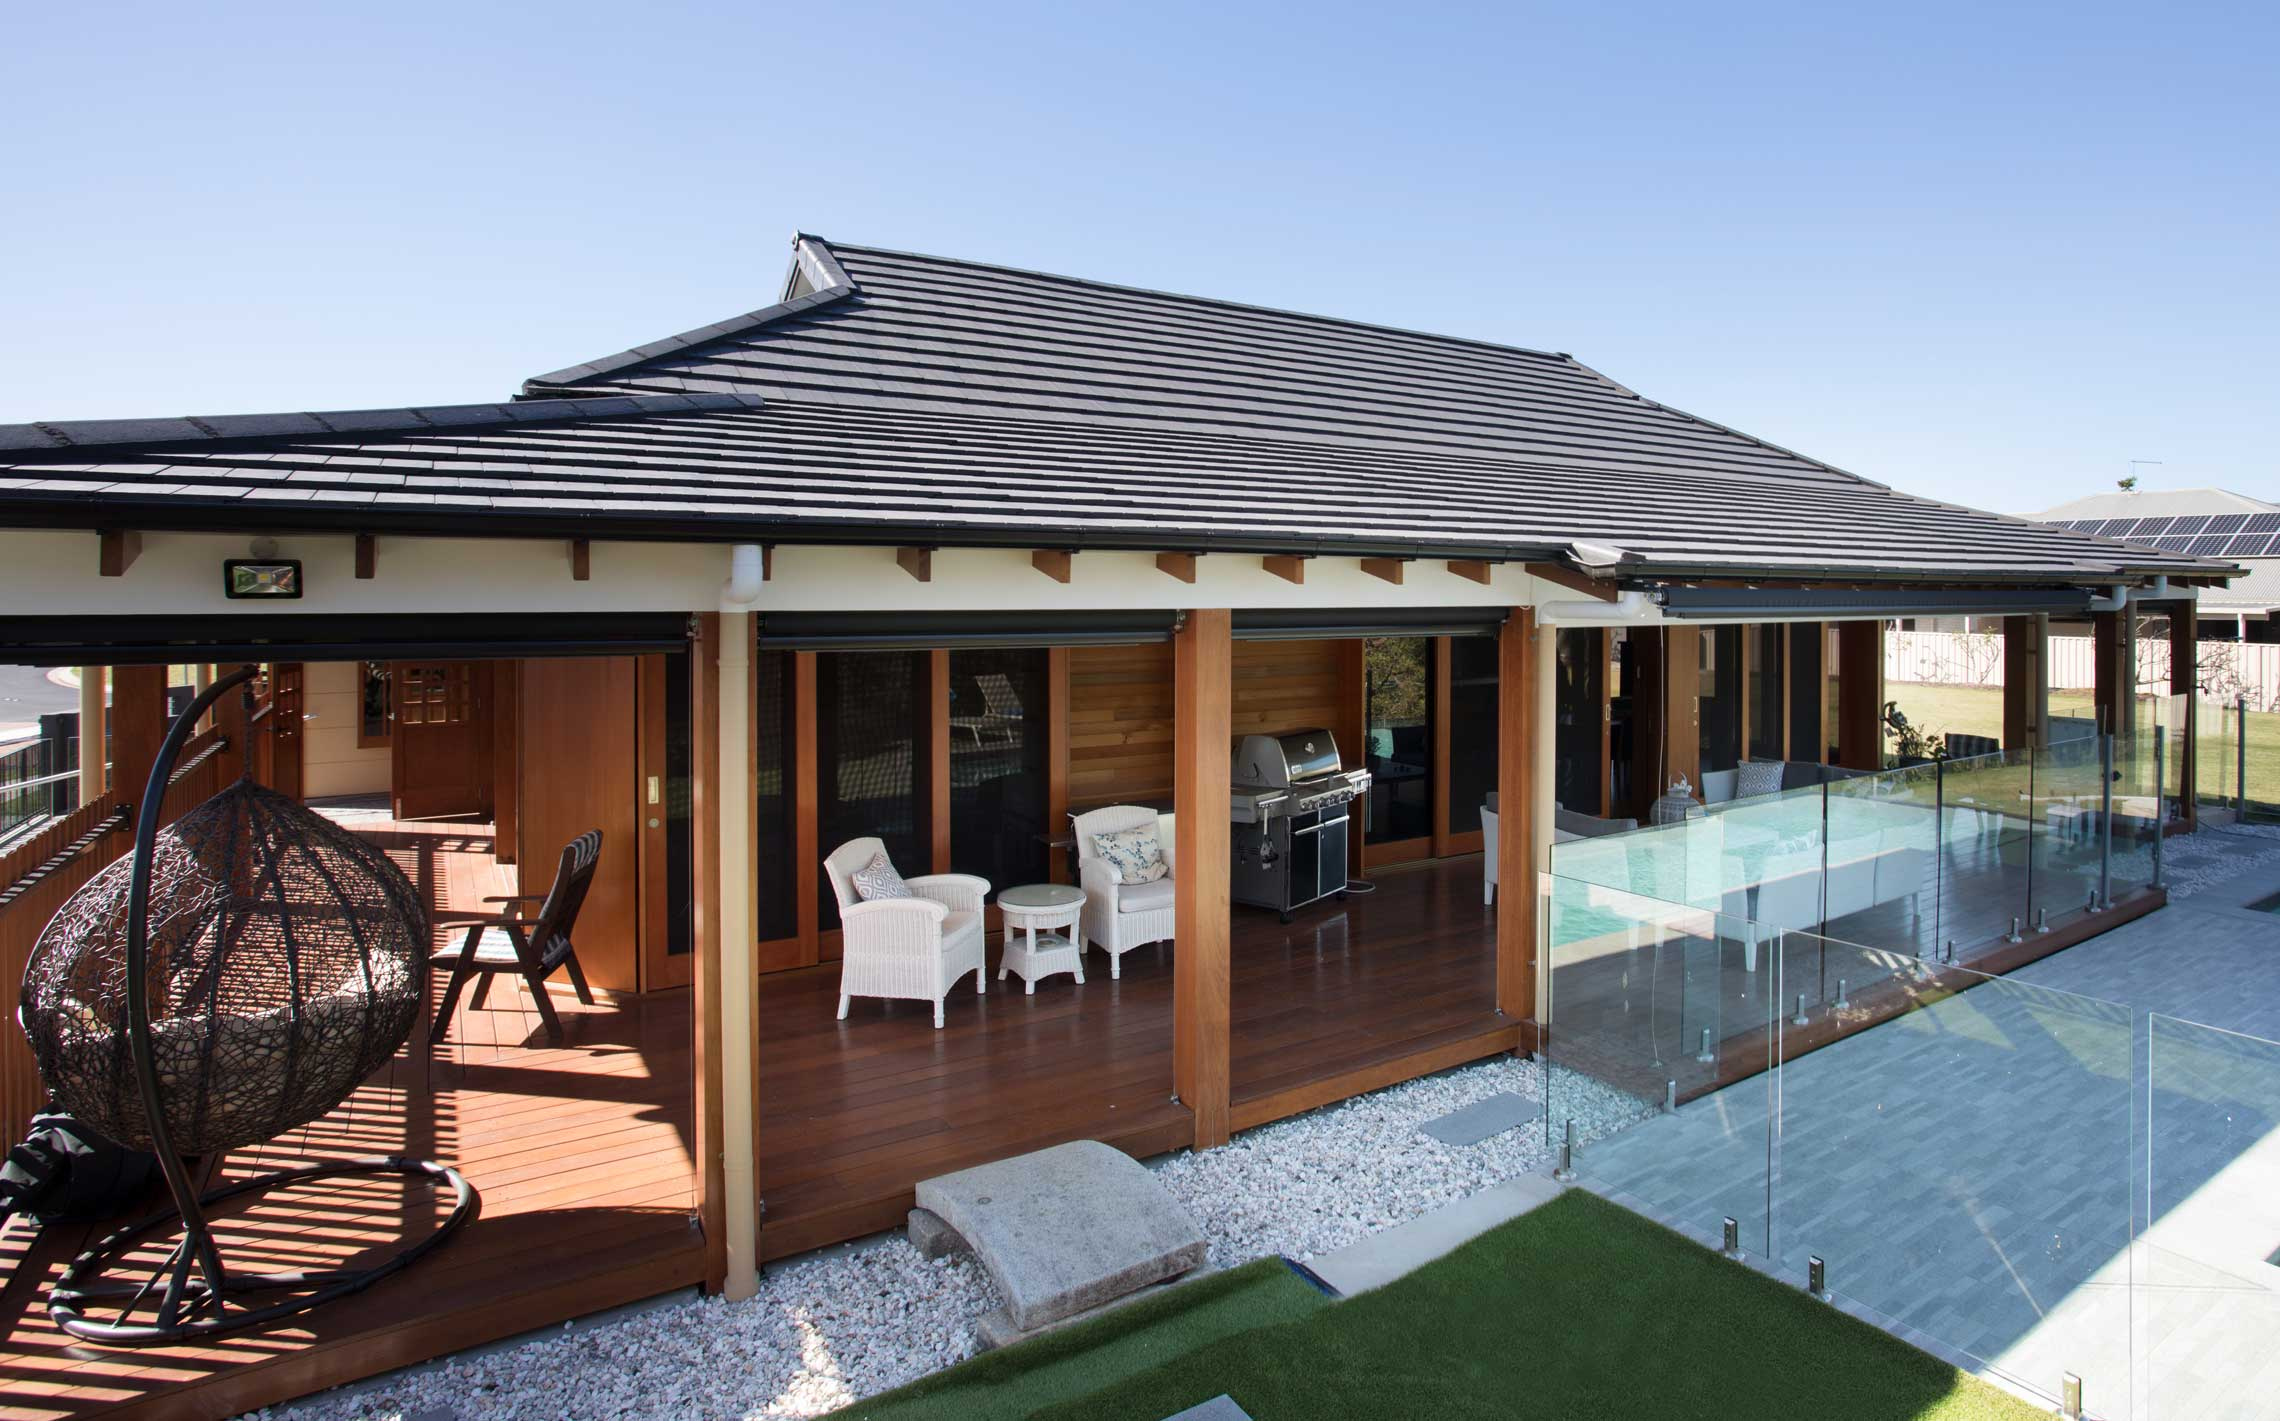 Zen and the art of roofing